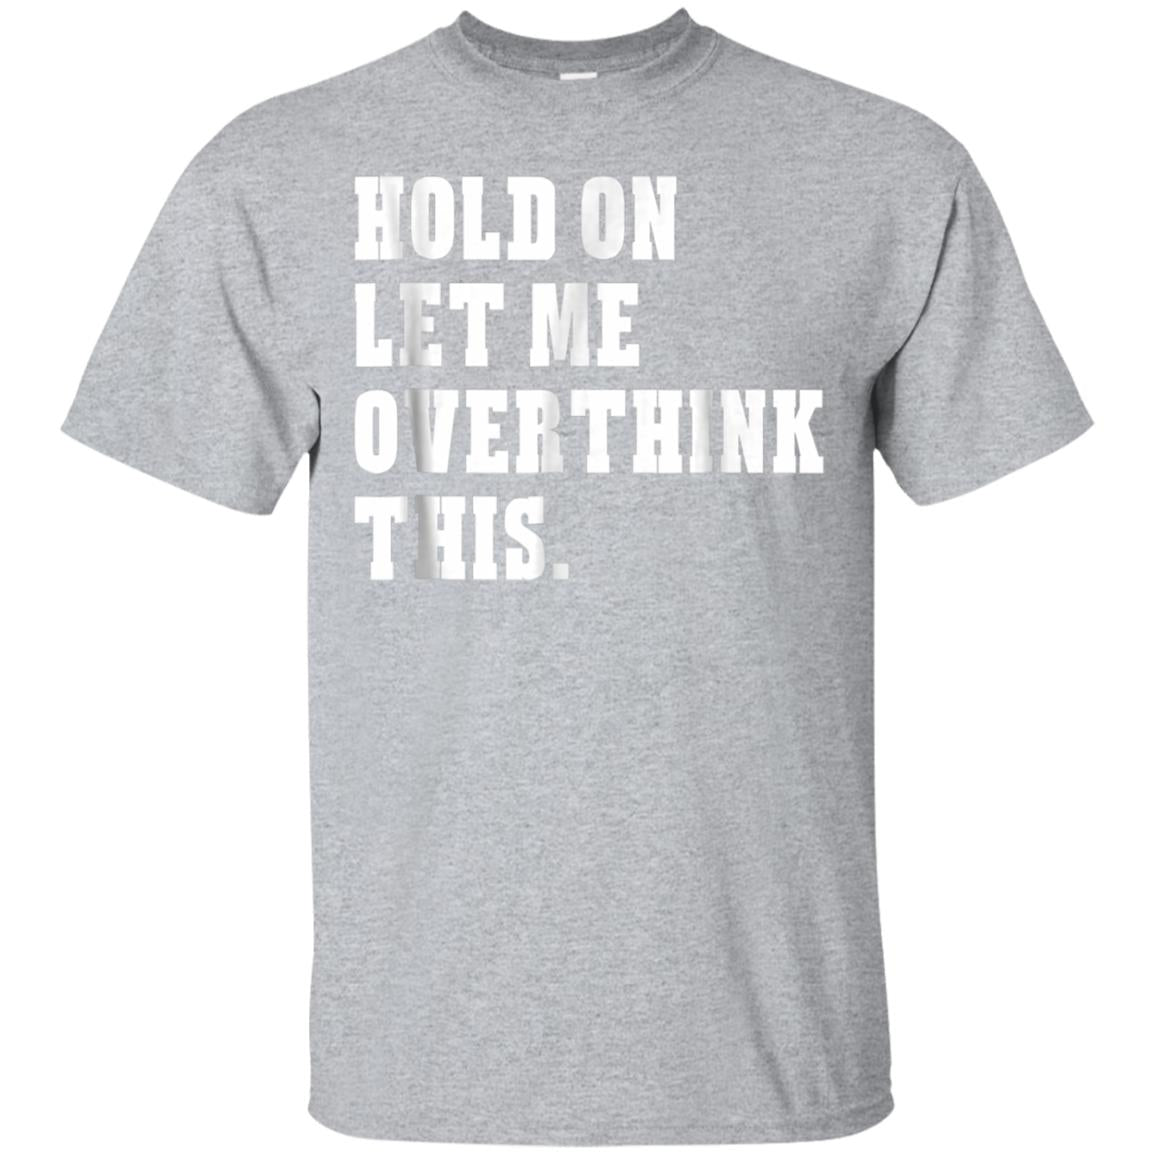 Hold On Let Me Overthink This Funny Sayings T-shirt 99promocode